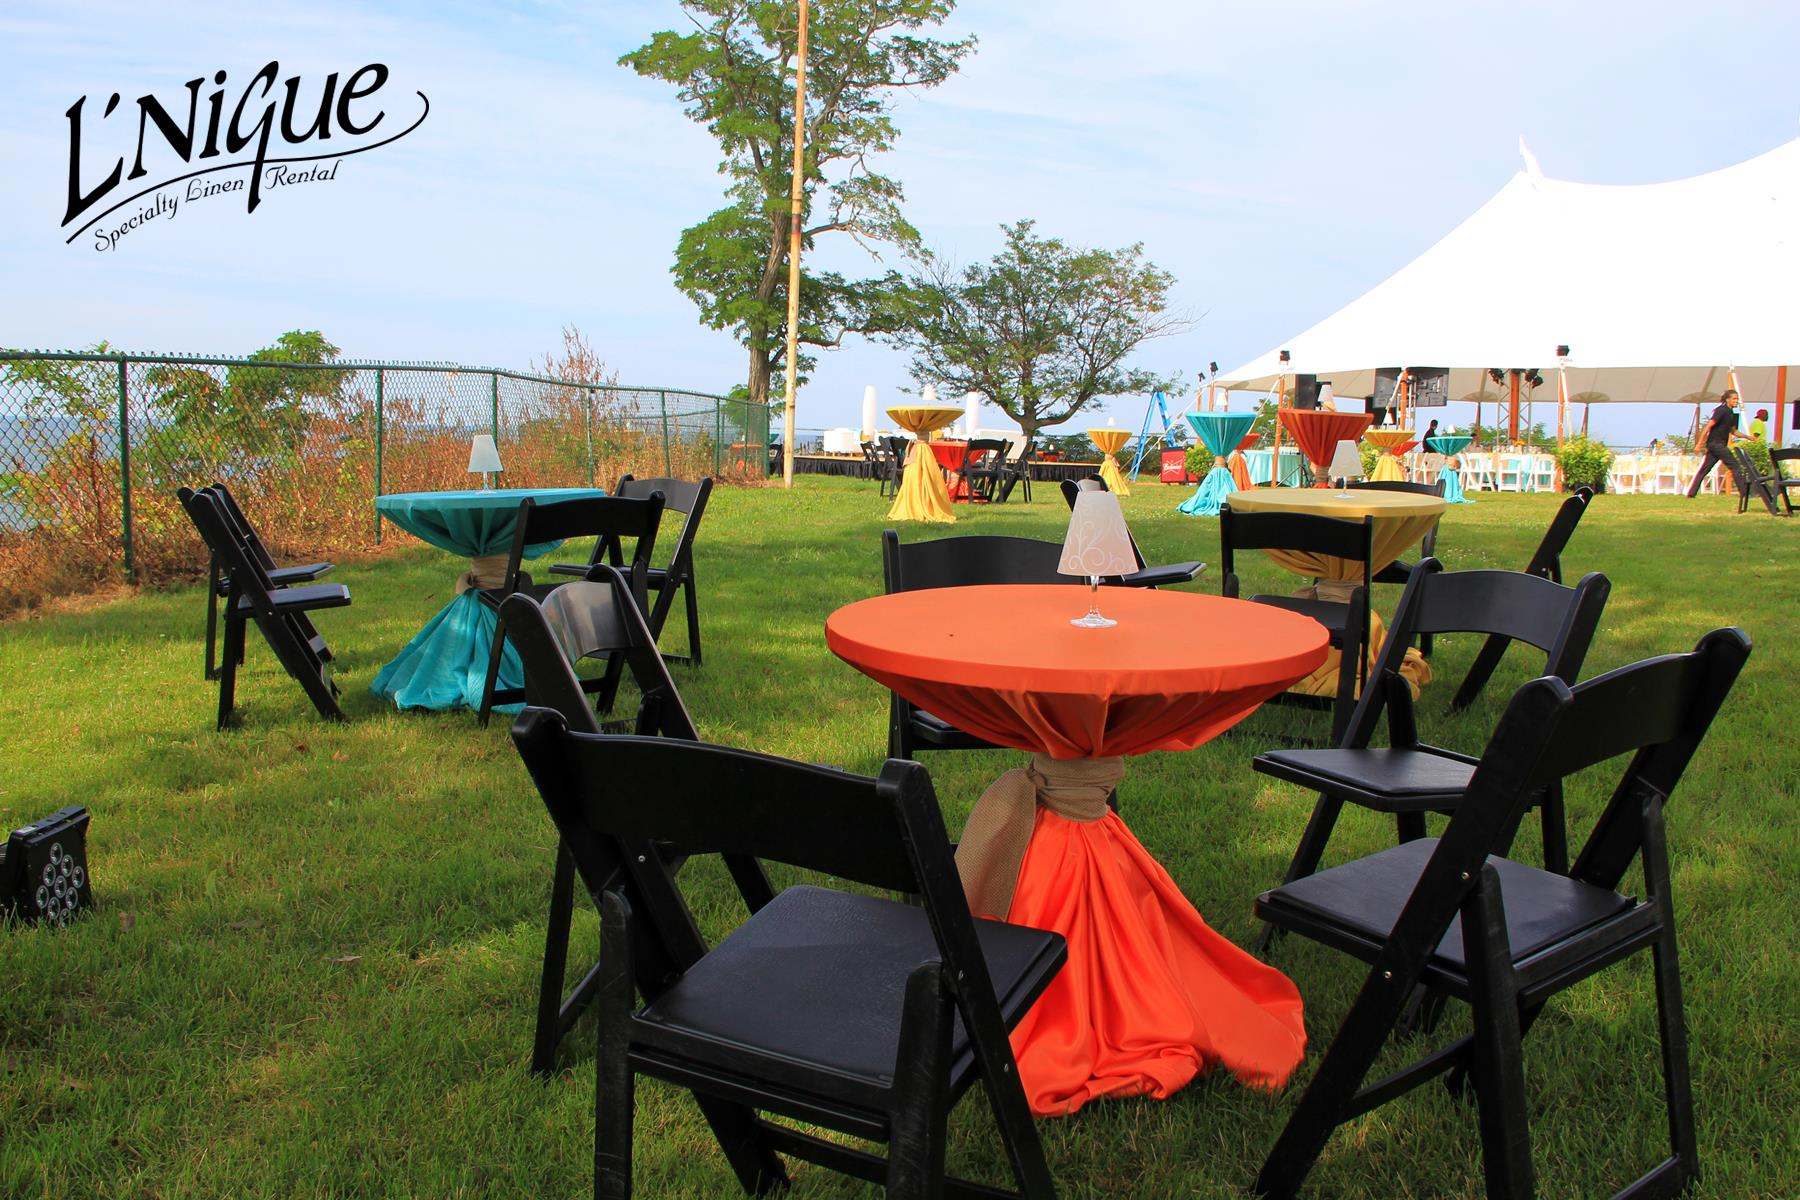 chair covers rental cleveland ohio grosfillex resin chairs majestic orange tablecloth specialty linen